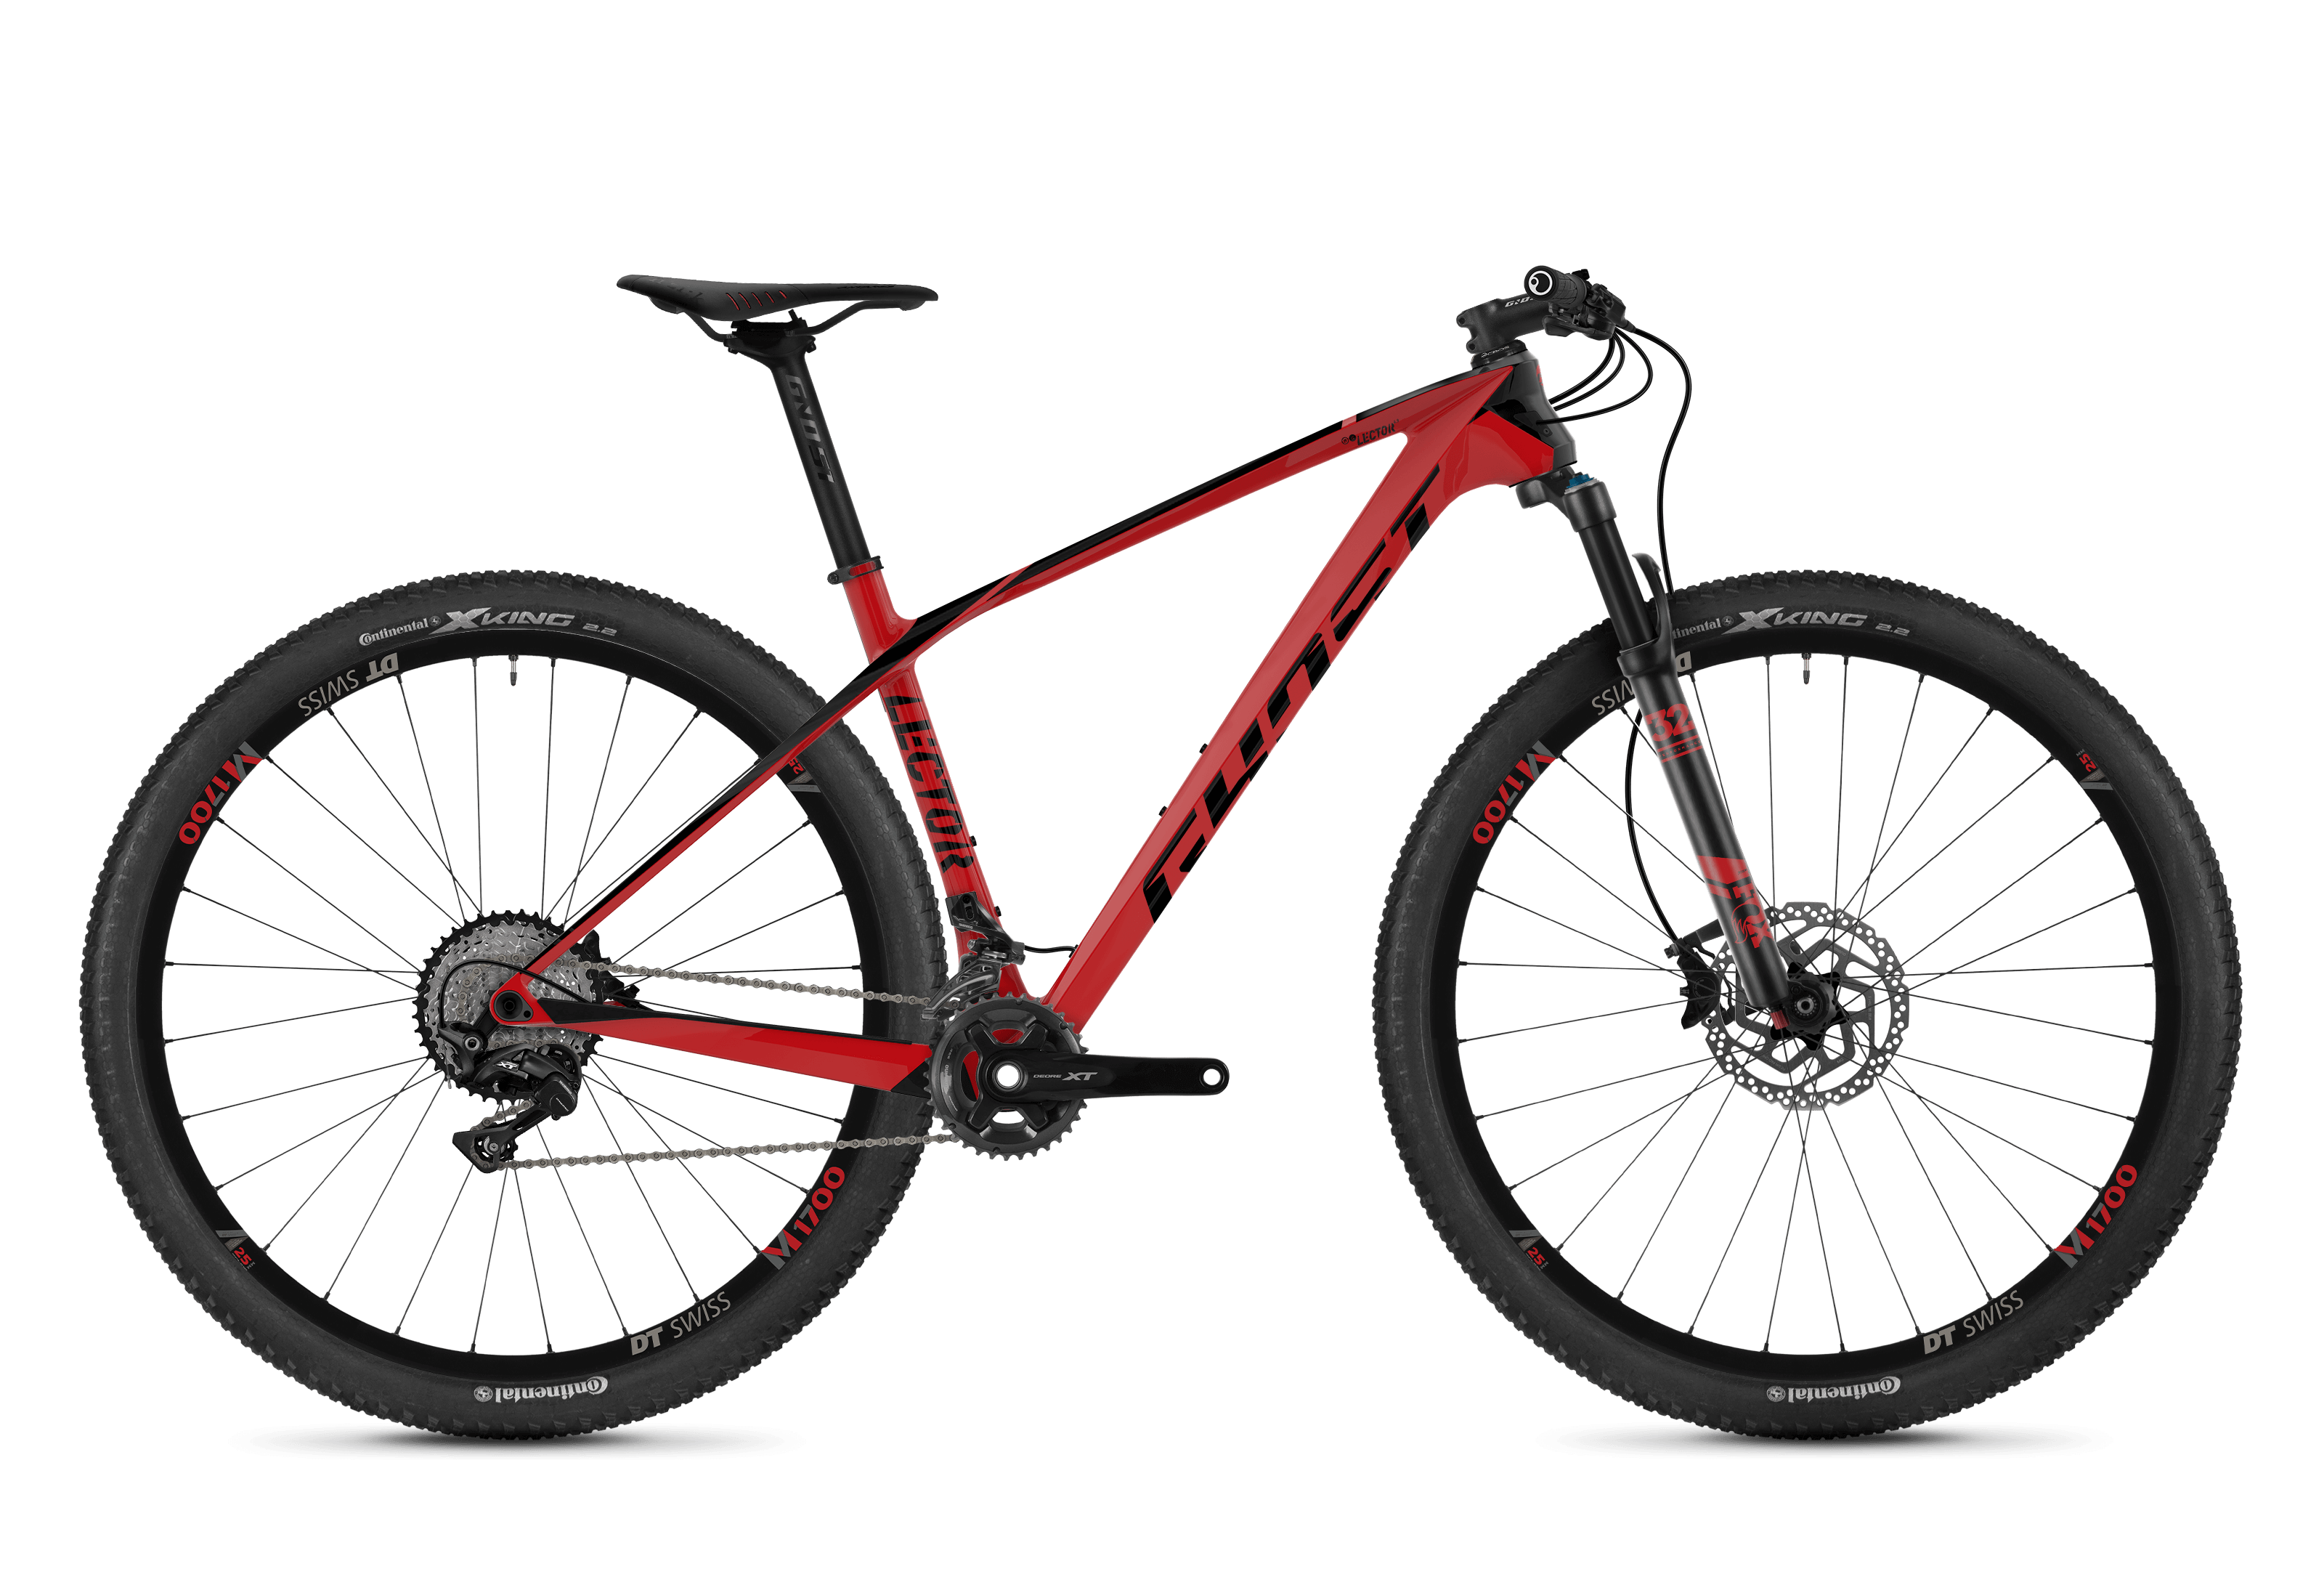 Horské kolo GHOST Lector 6.9 LC red / black L 2018